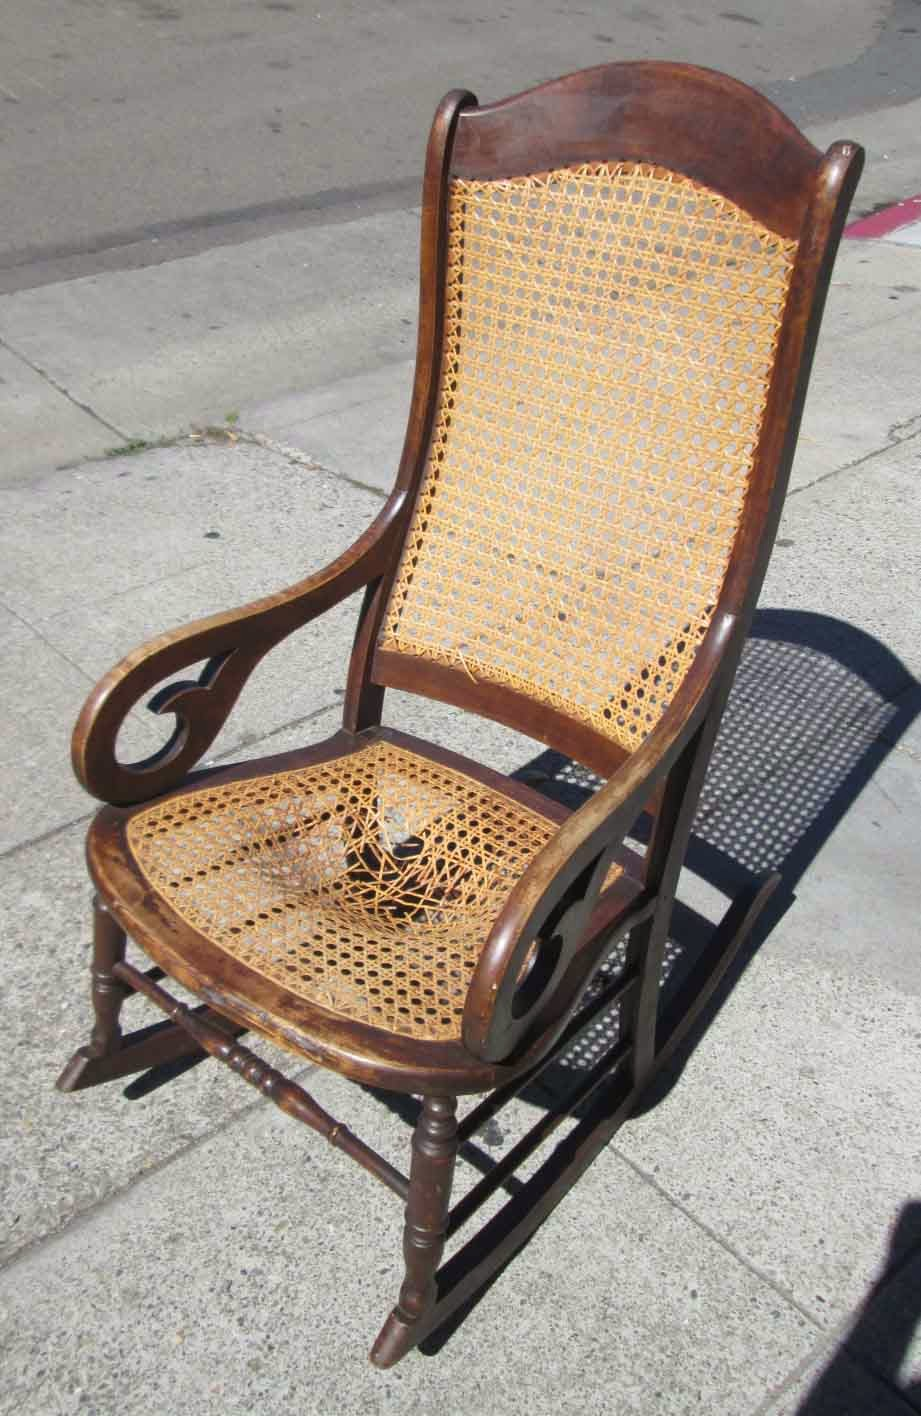 SOLD Antique Cane Rocking Chair - $20 - UHURU FURNITURE & COLLECTIBLES: SOLD Antique Cane Rocking Chair - $20